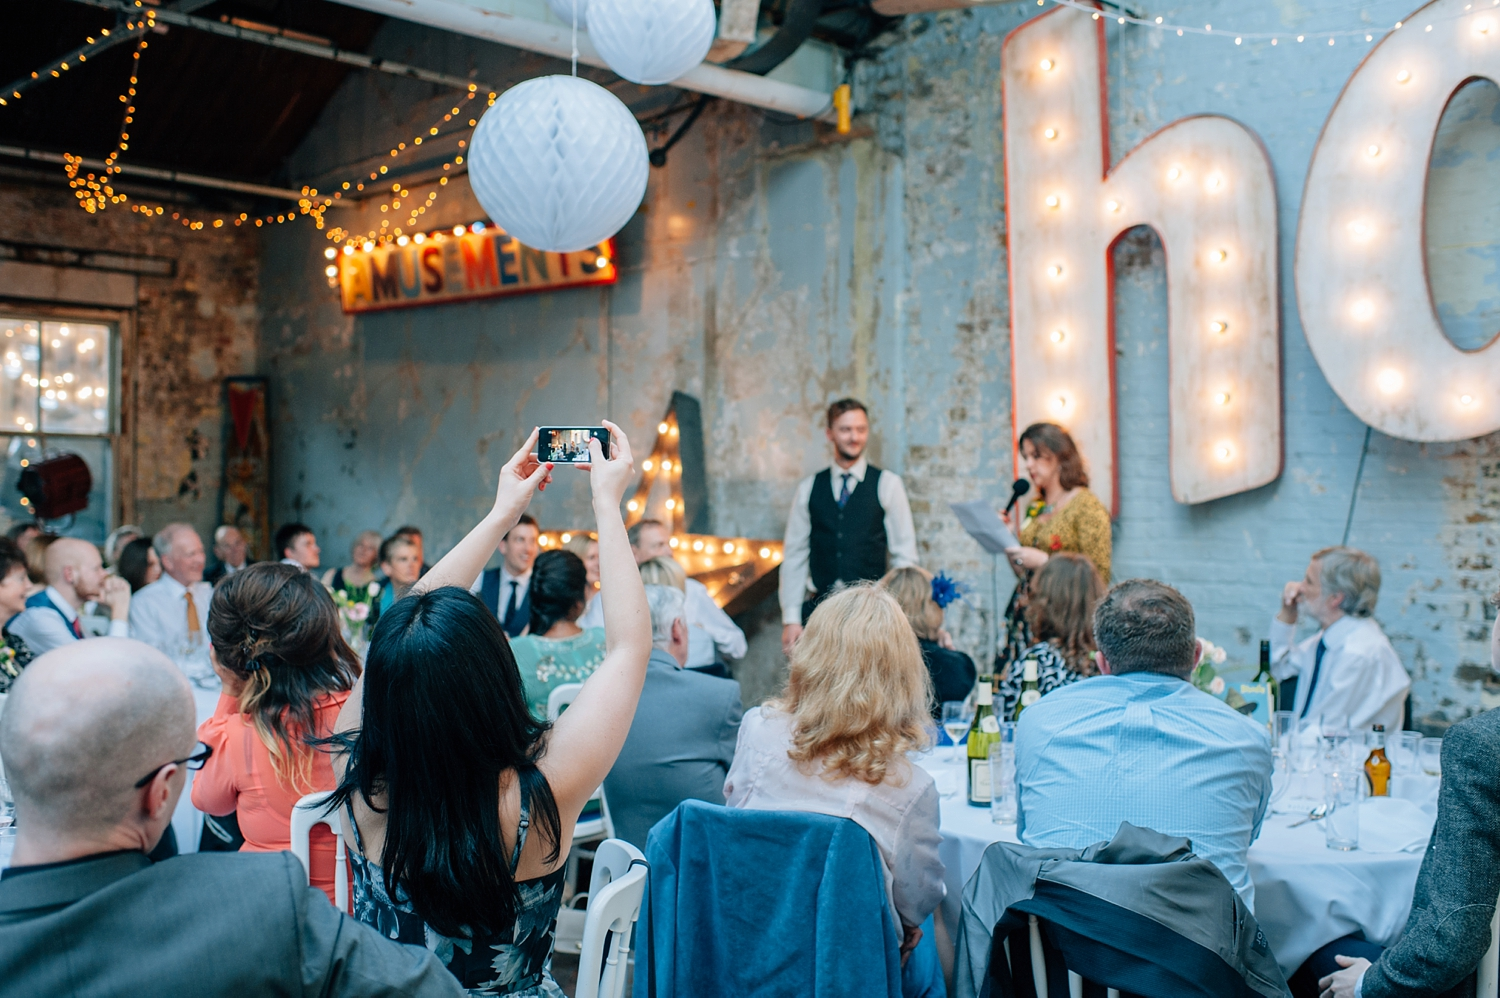 0173-lisa-devine-alternative-wedding-photography-london-hackney-dalston-london-photography-townhall-hotel.JPG